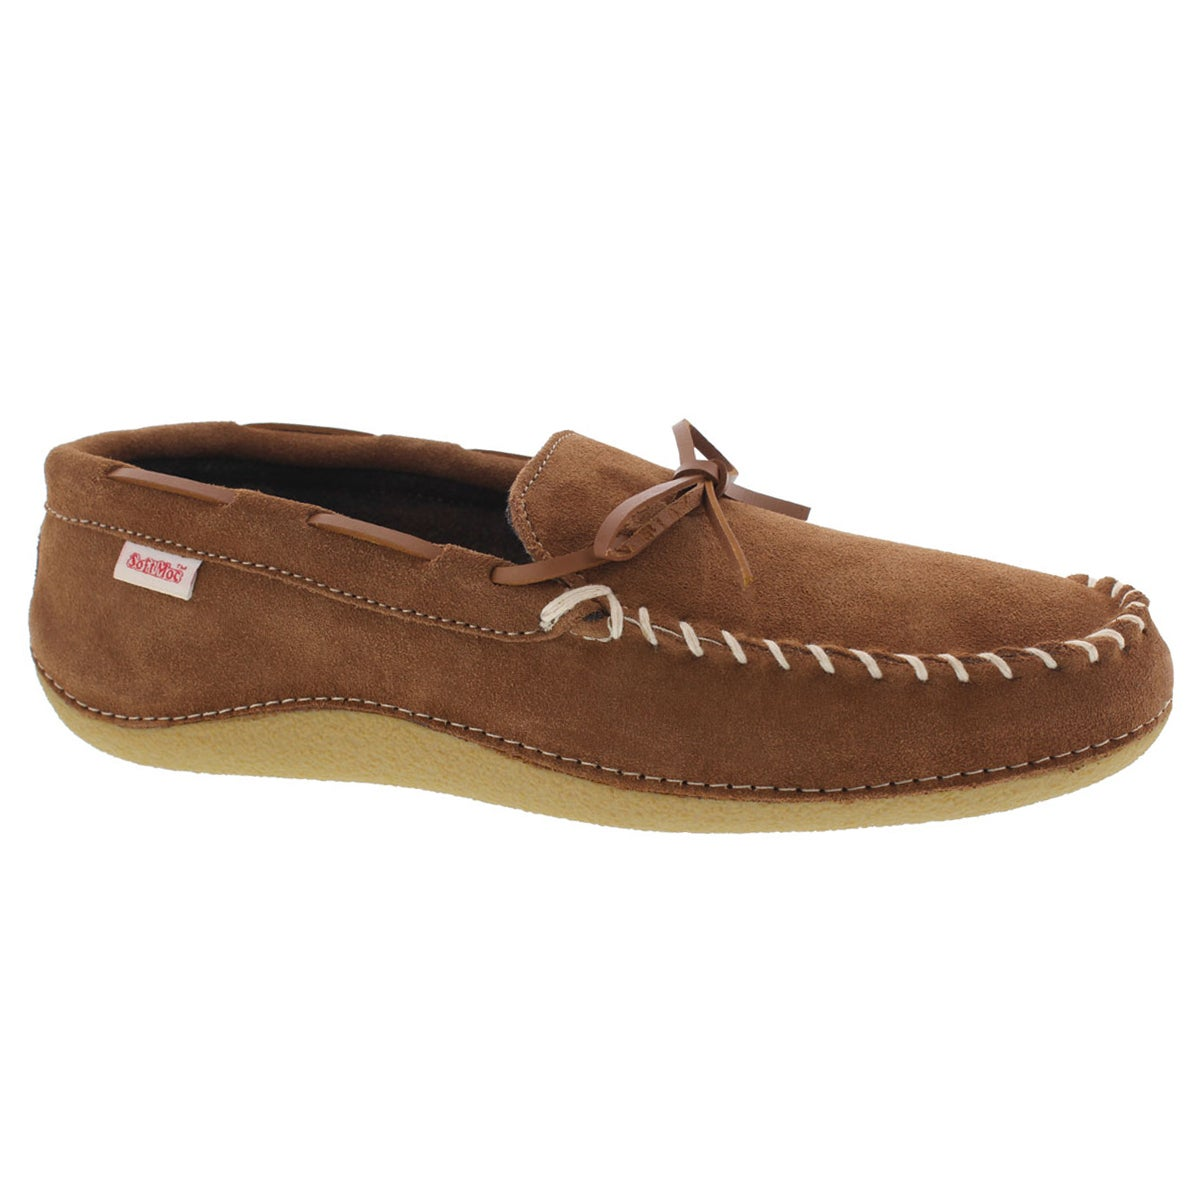 Men's GREG hazelnut plaid lined moccasins